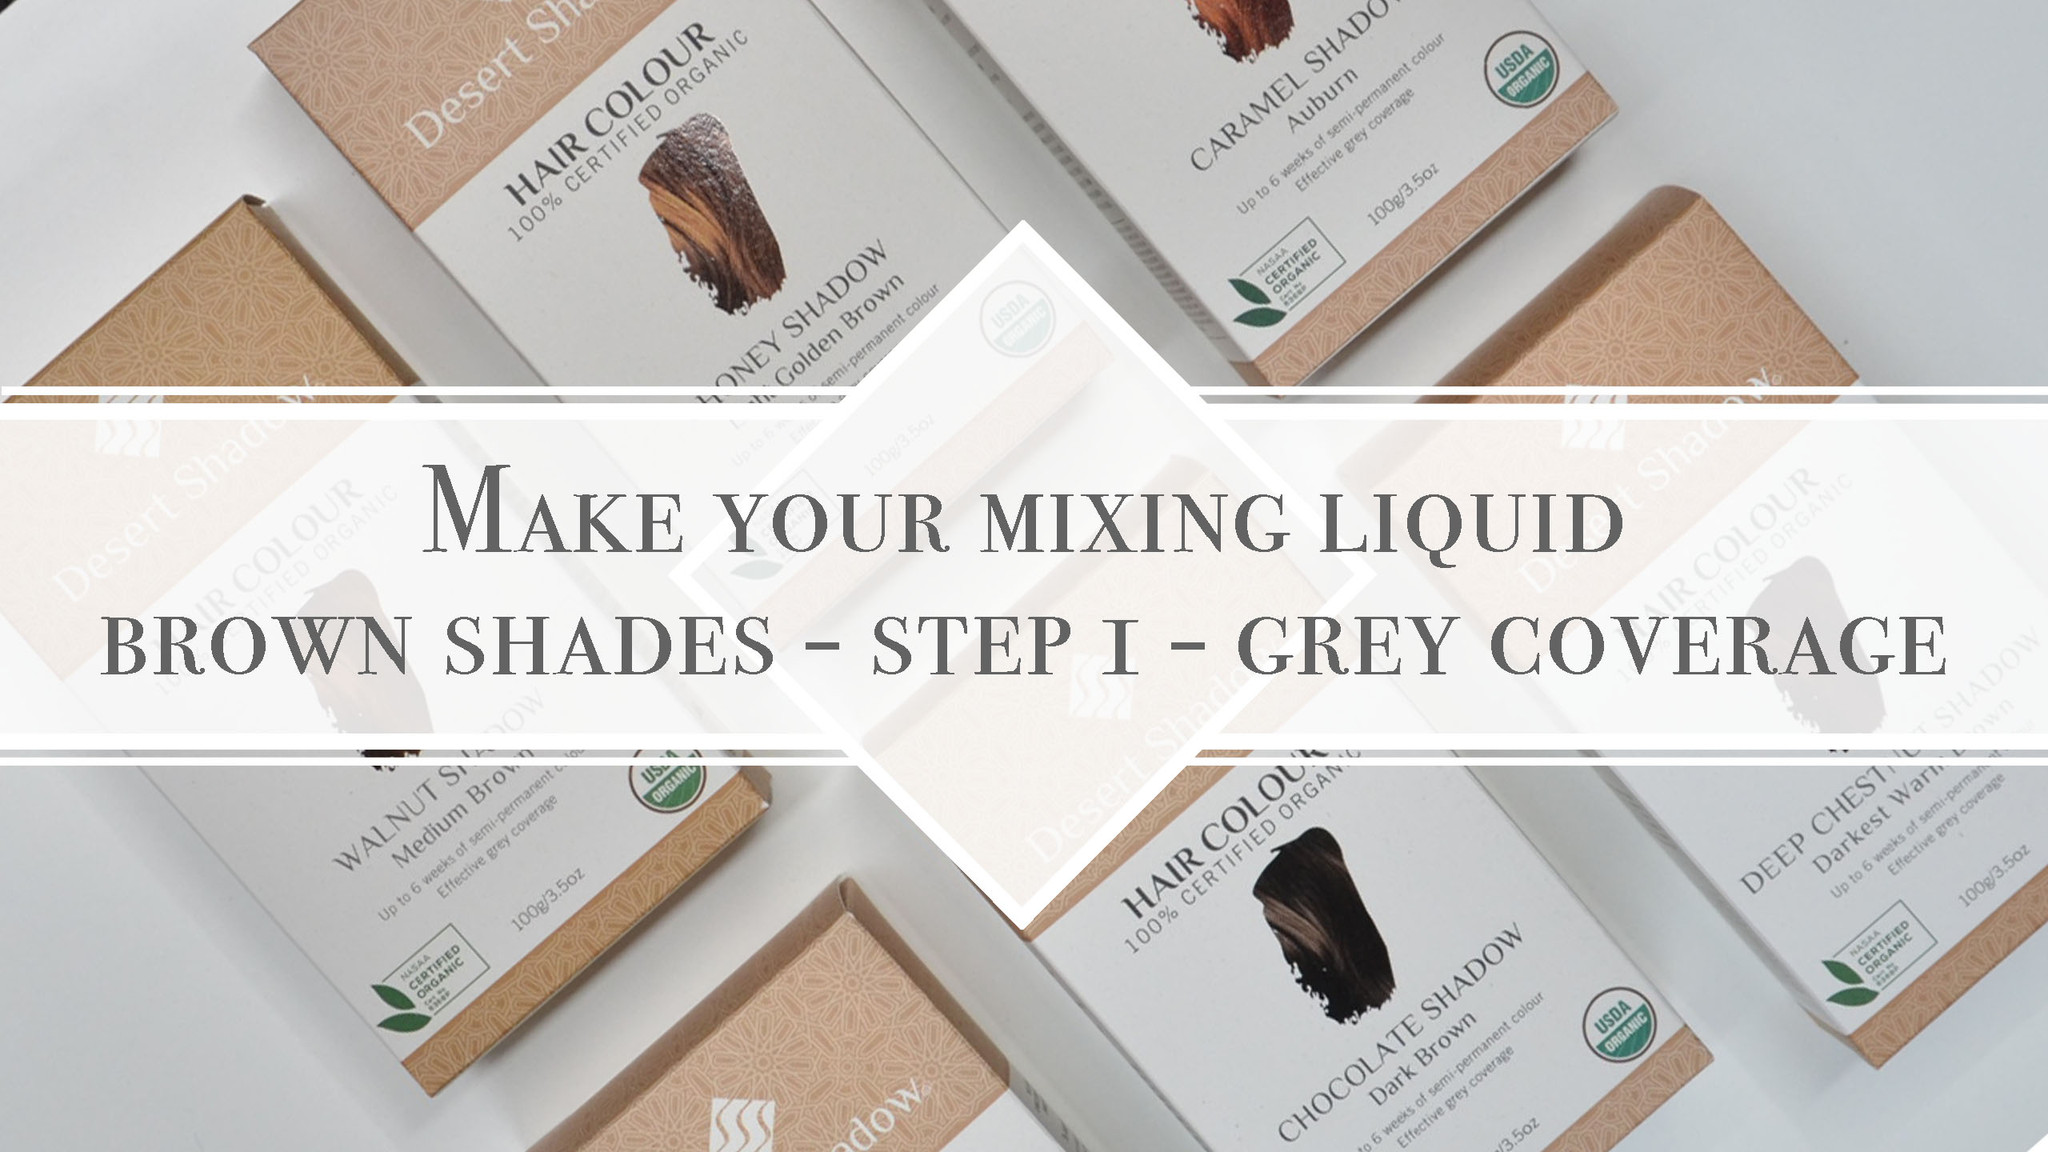 Make your mixing liquid for brown shades step 1 - grey coverage mixing method with Desert Shadow